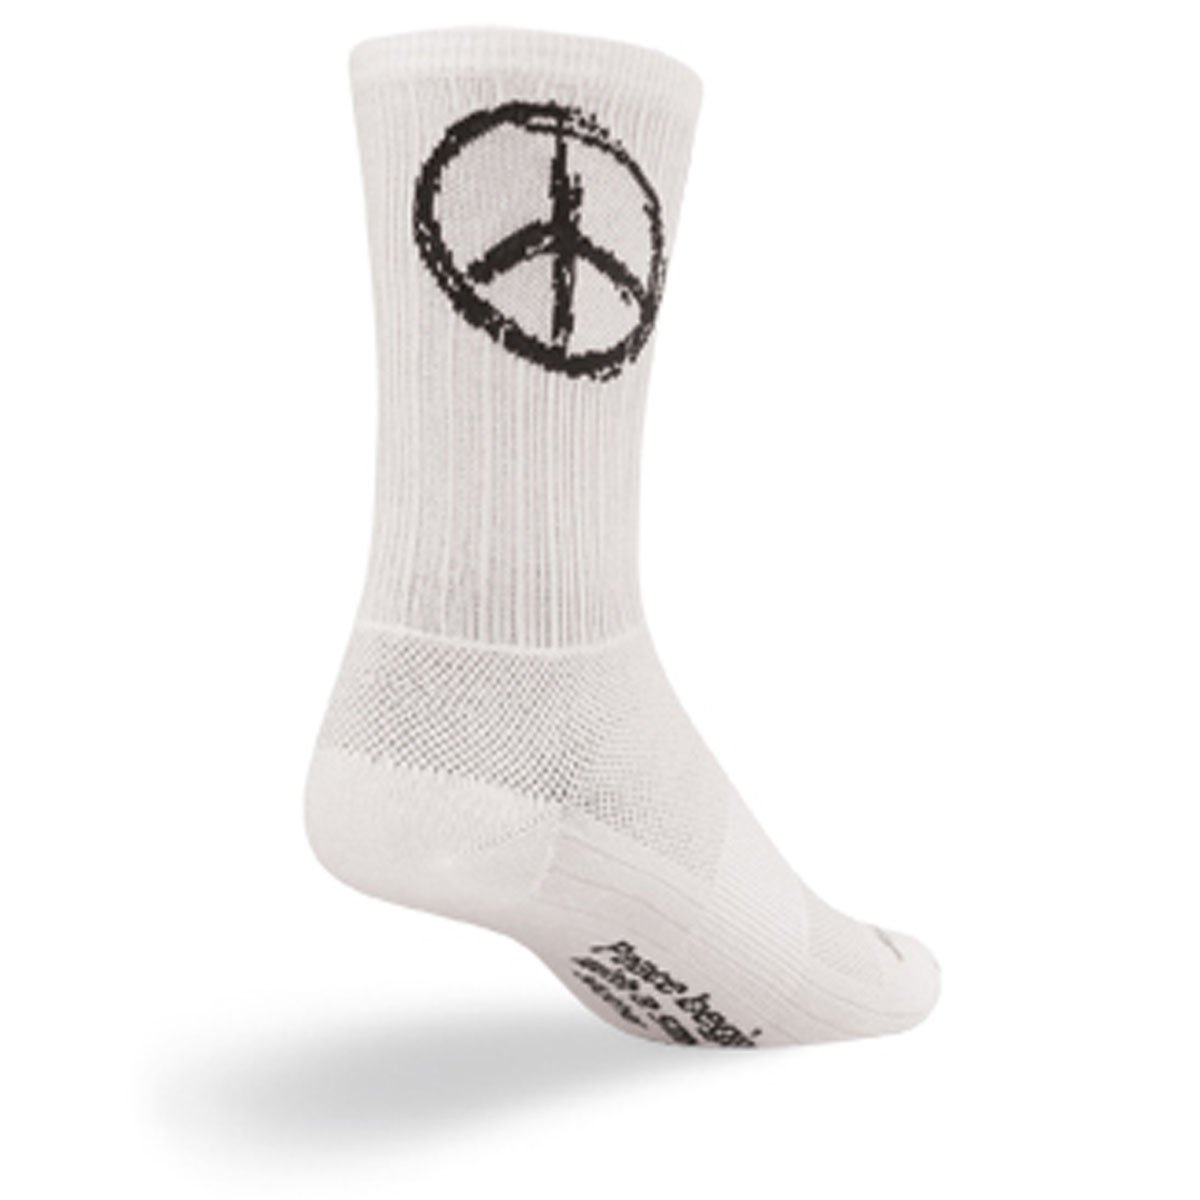 SockGuy SGX 6in Peace Performance Cycling/Running Socks (Peace - L/XL) Size X-Large by SockGuy